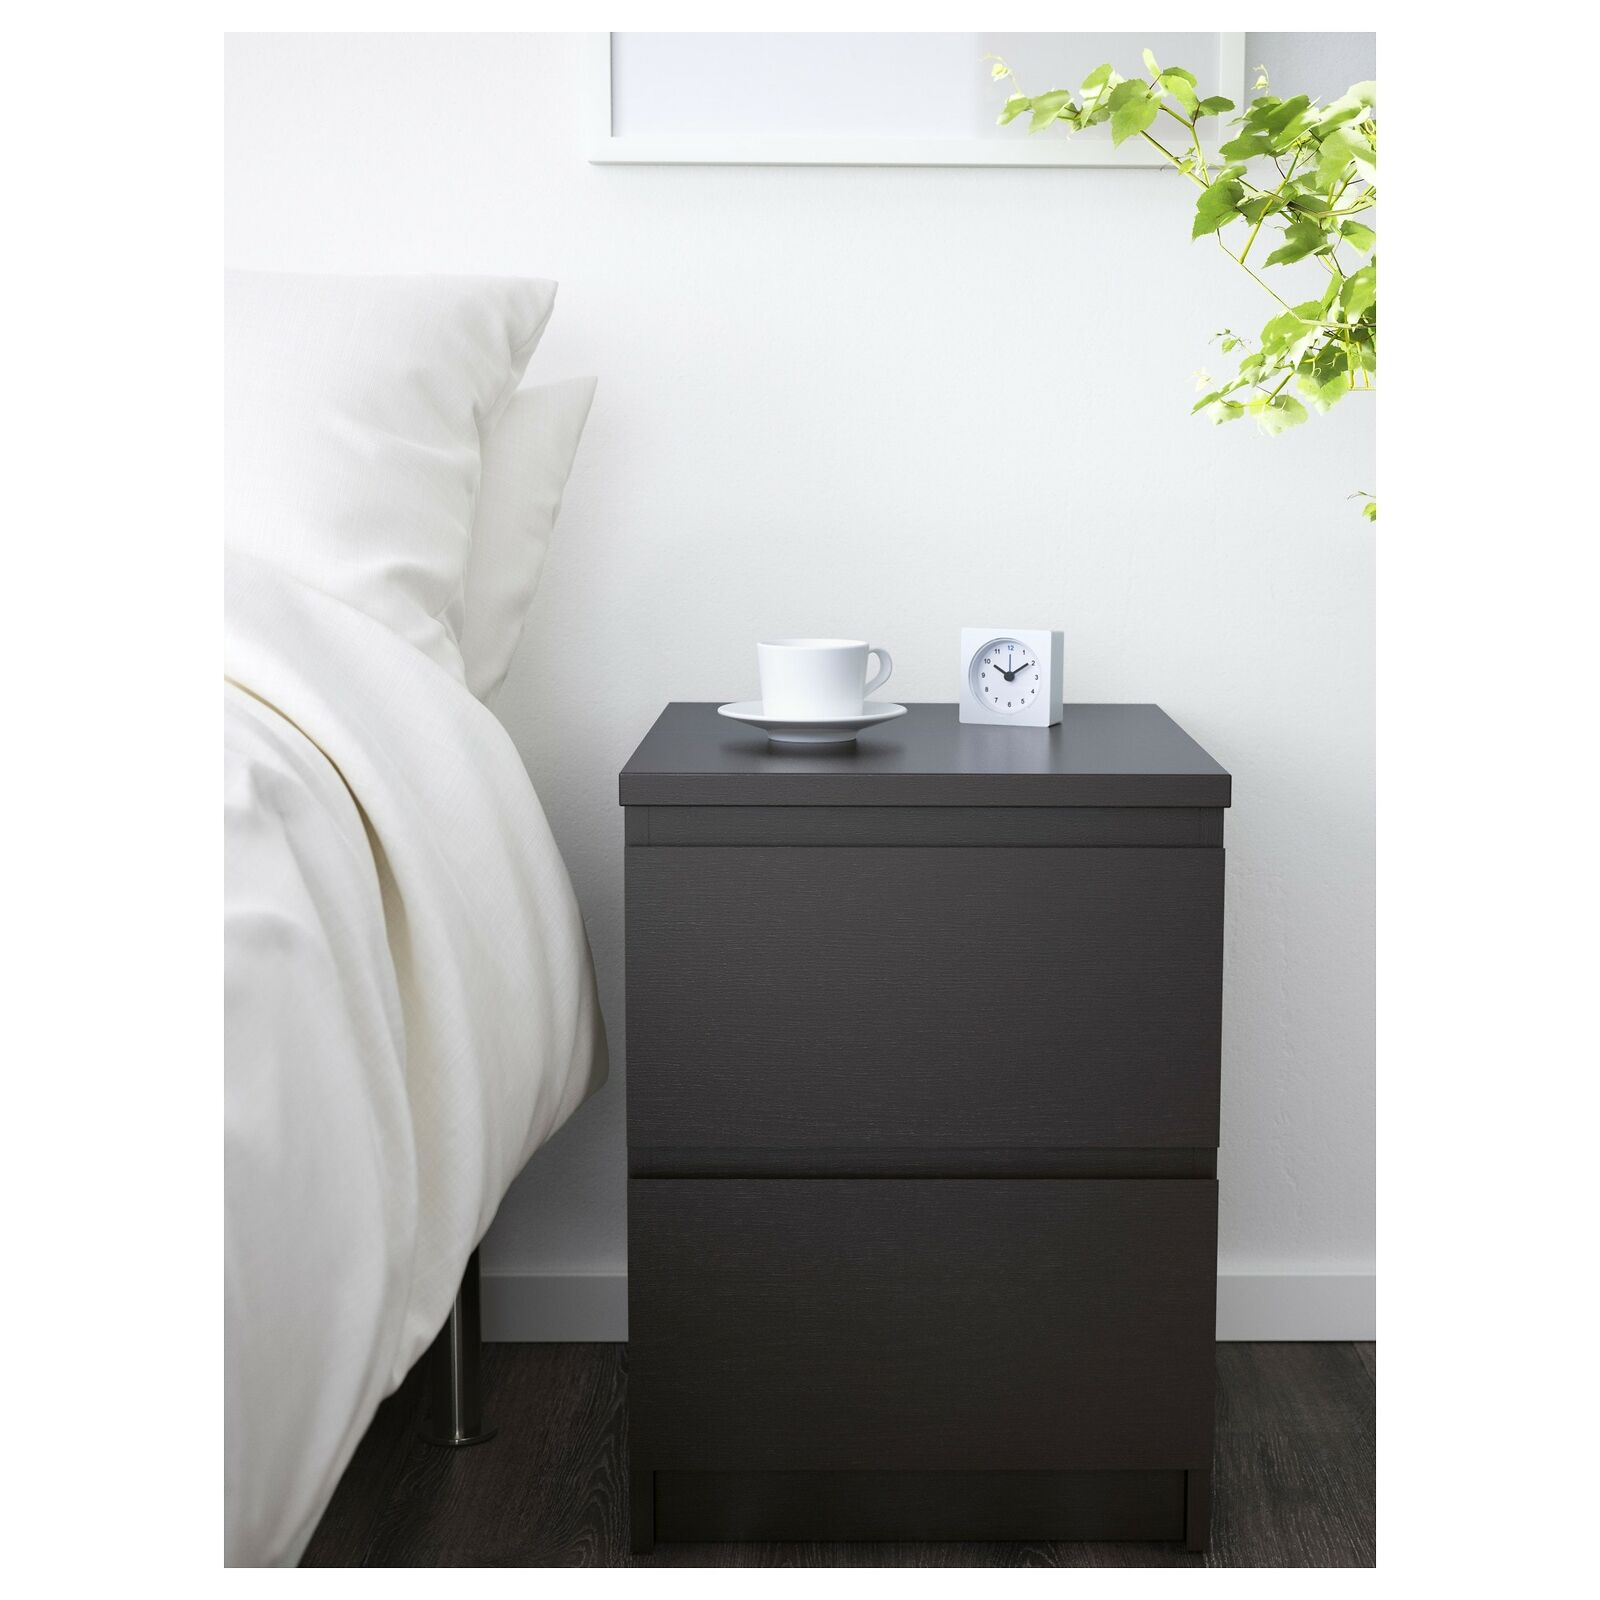 Ikea Malm 2 Drawer Chest Nightstand Black Brown